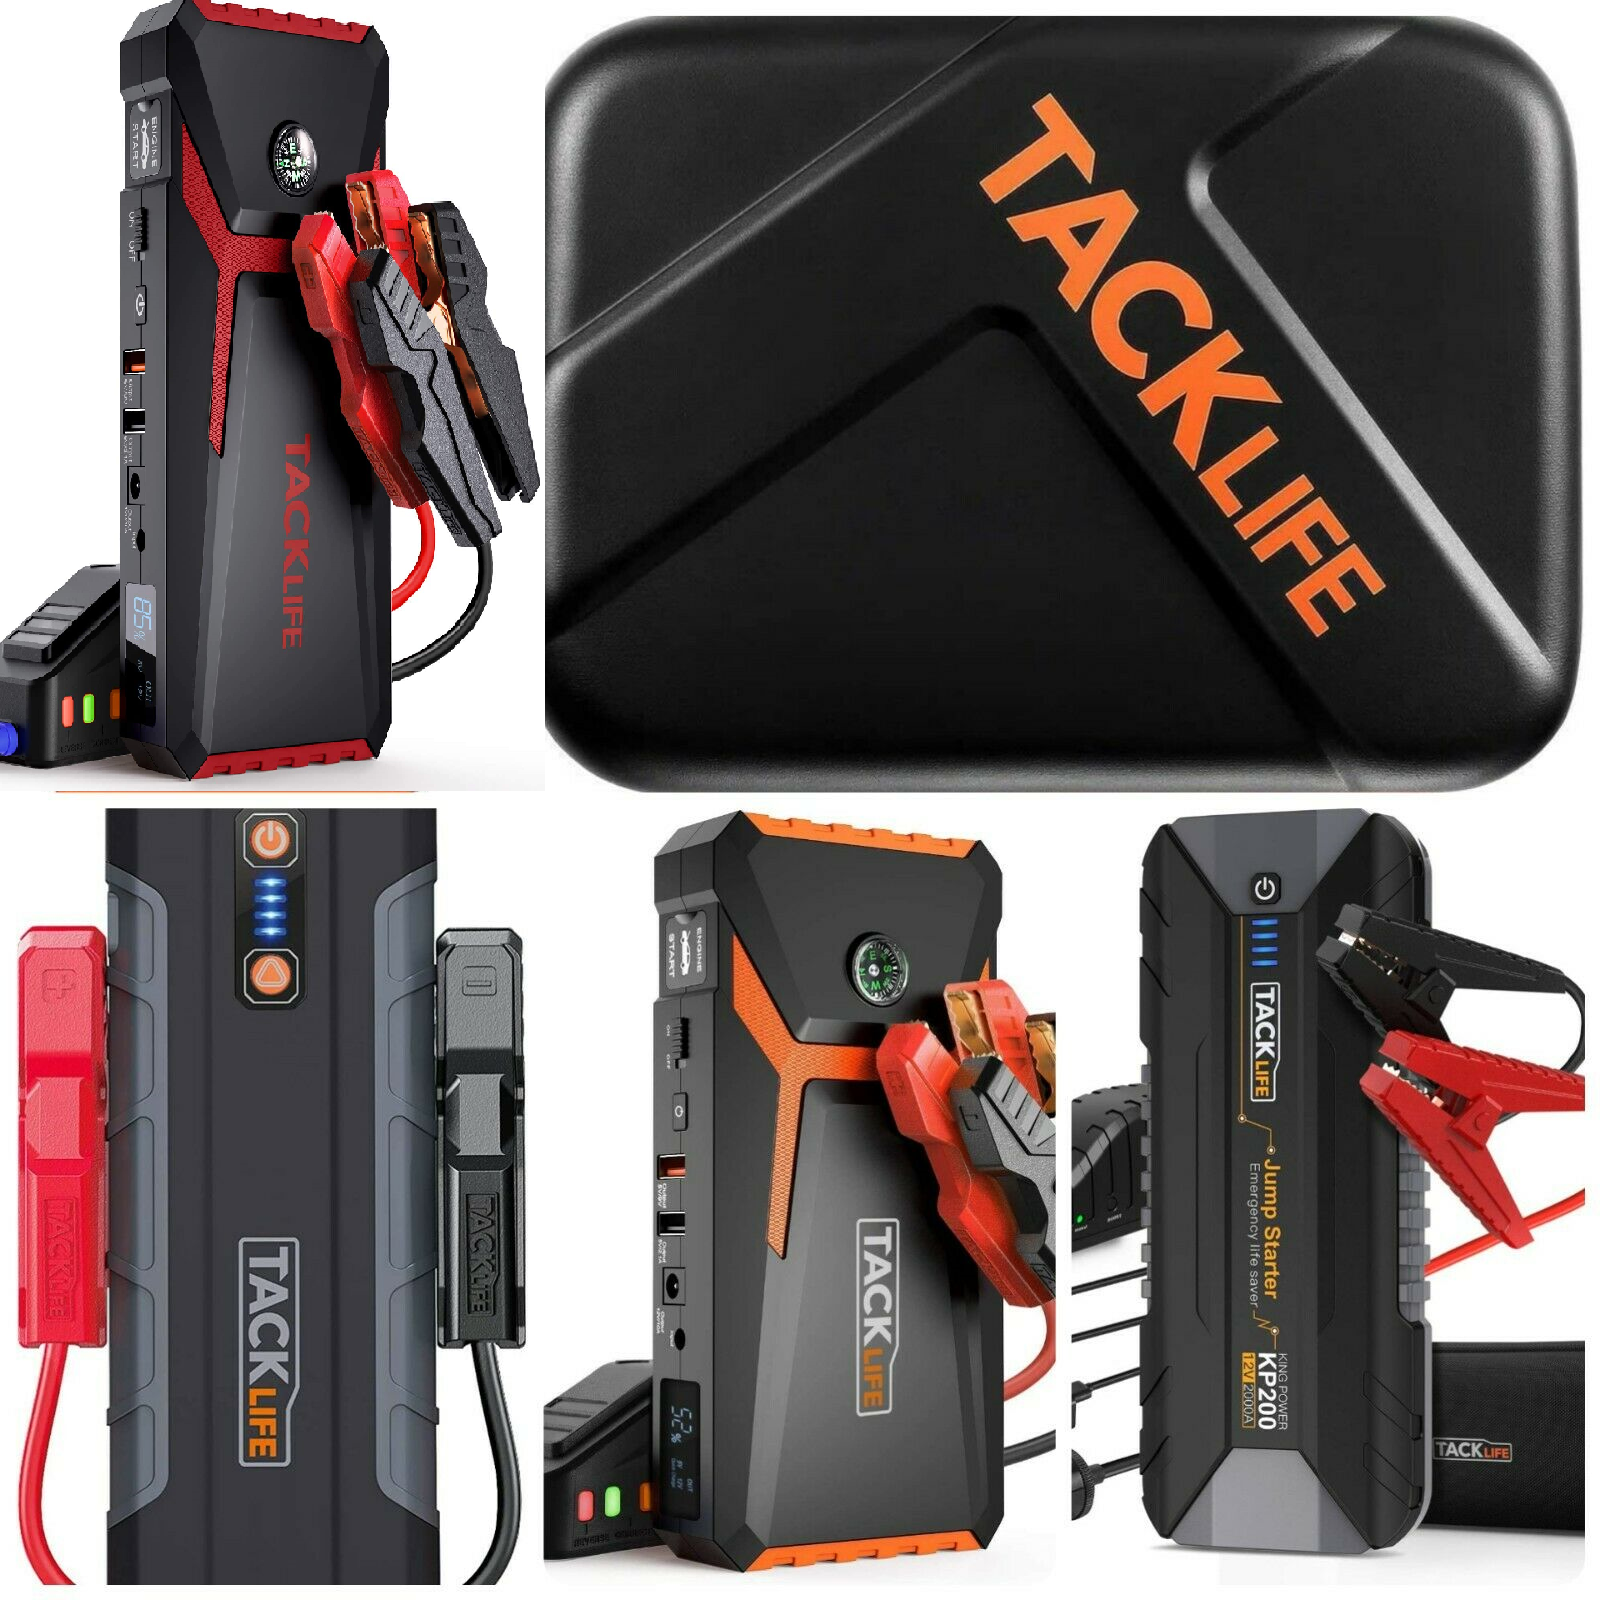 ⚡ tacklife rugged truck battery booster starter box portable package